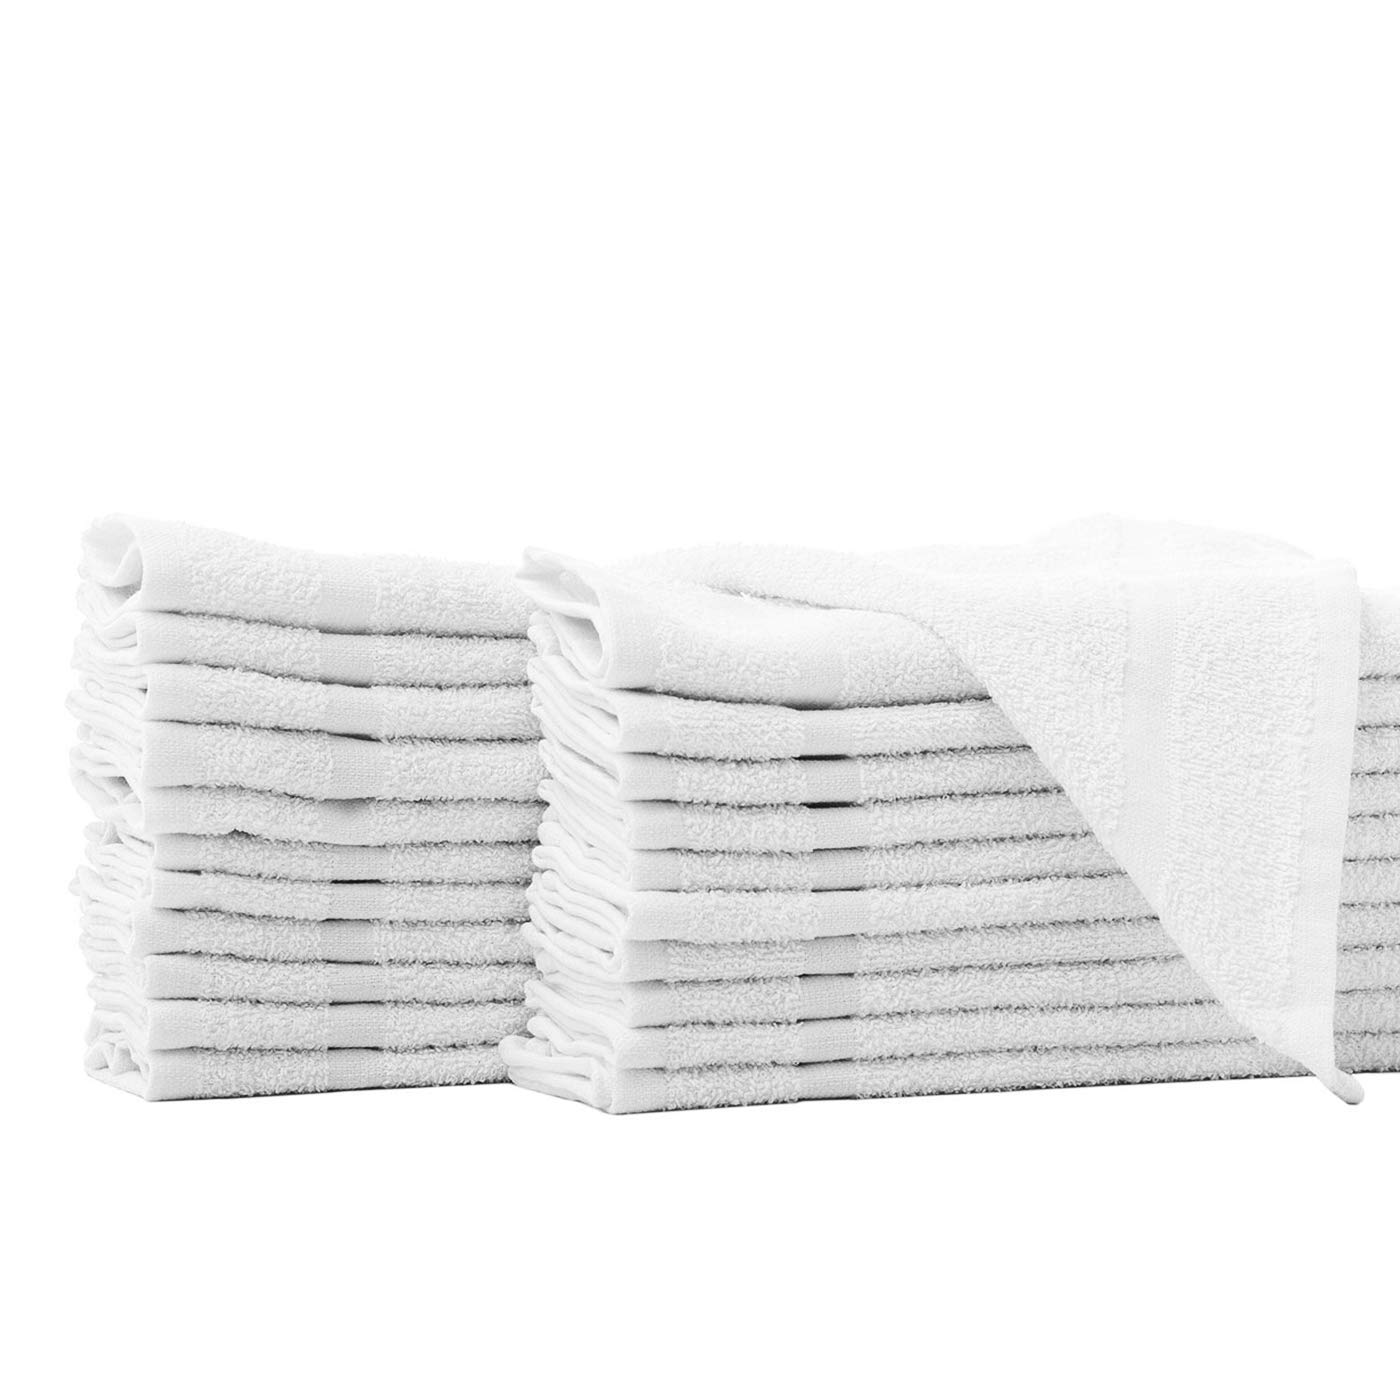 Honest Linen Wash Cloth Kitchen Towels, 24 Pack, 100% Natural Cotton, 12 x 12 Face Towels, Commercial Grade Washcloth, Machine Washable Cleaning Rags, Wash Cloths for Bathroom (White)